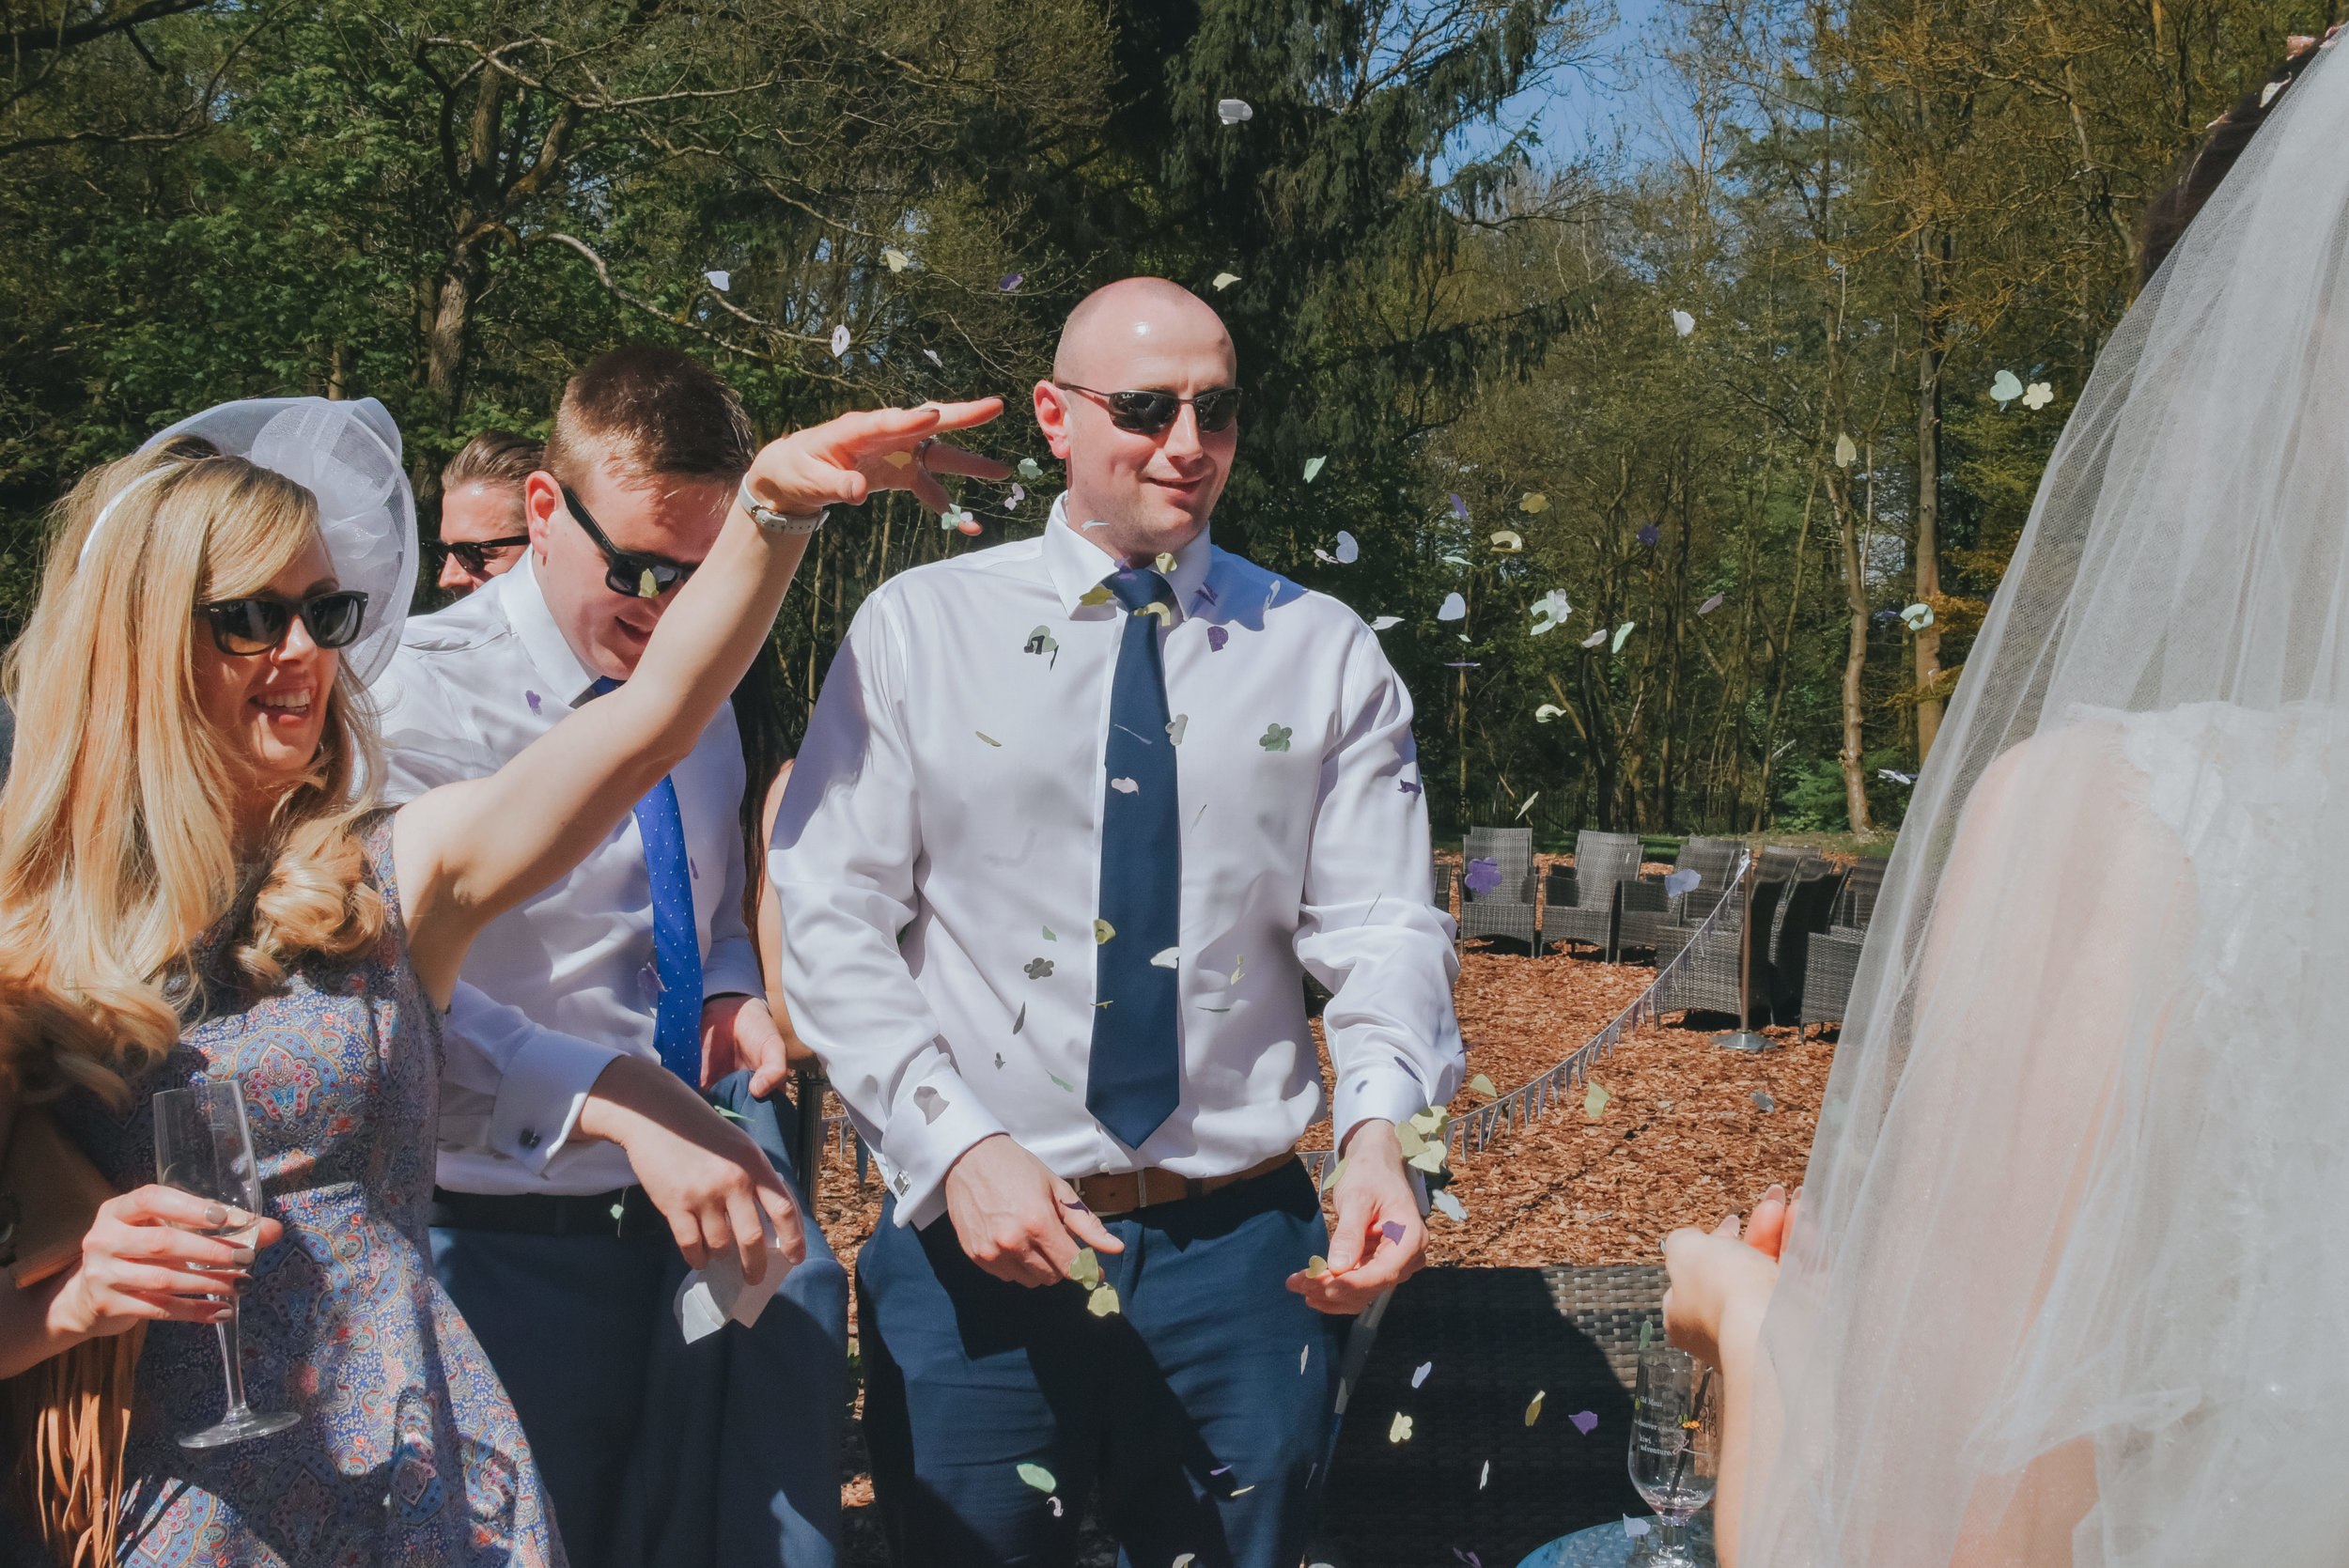 guests throwing confetti over bride